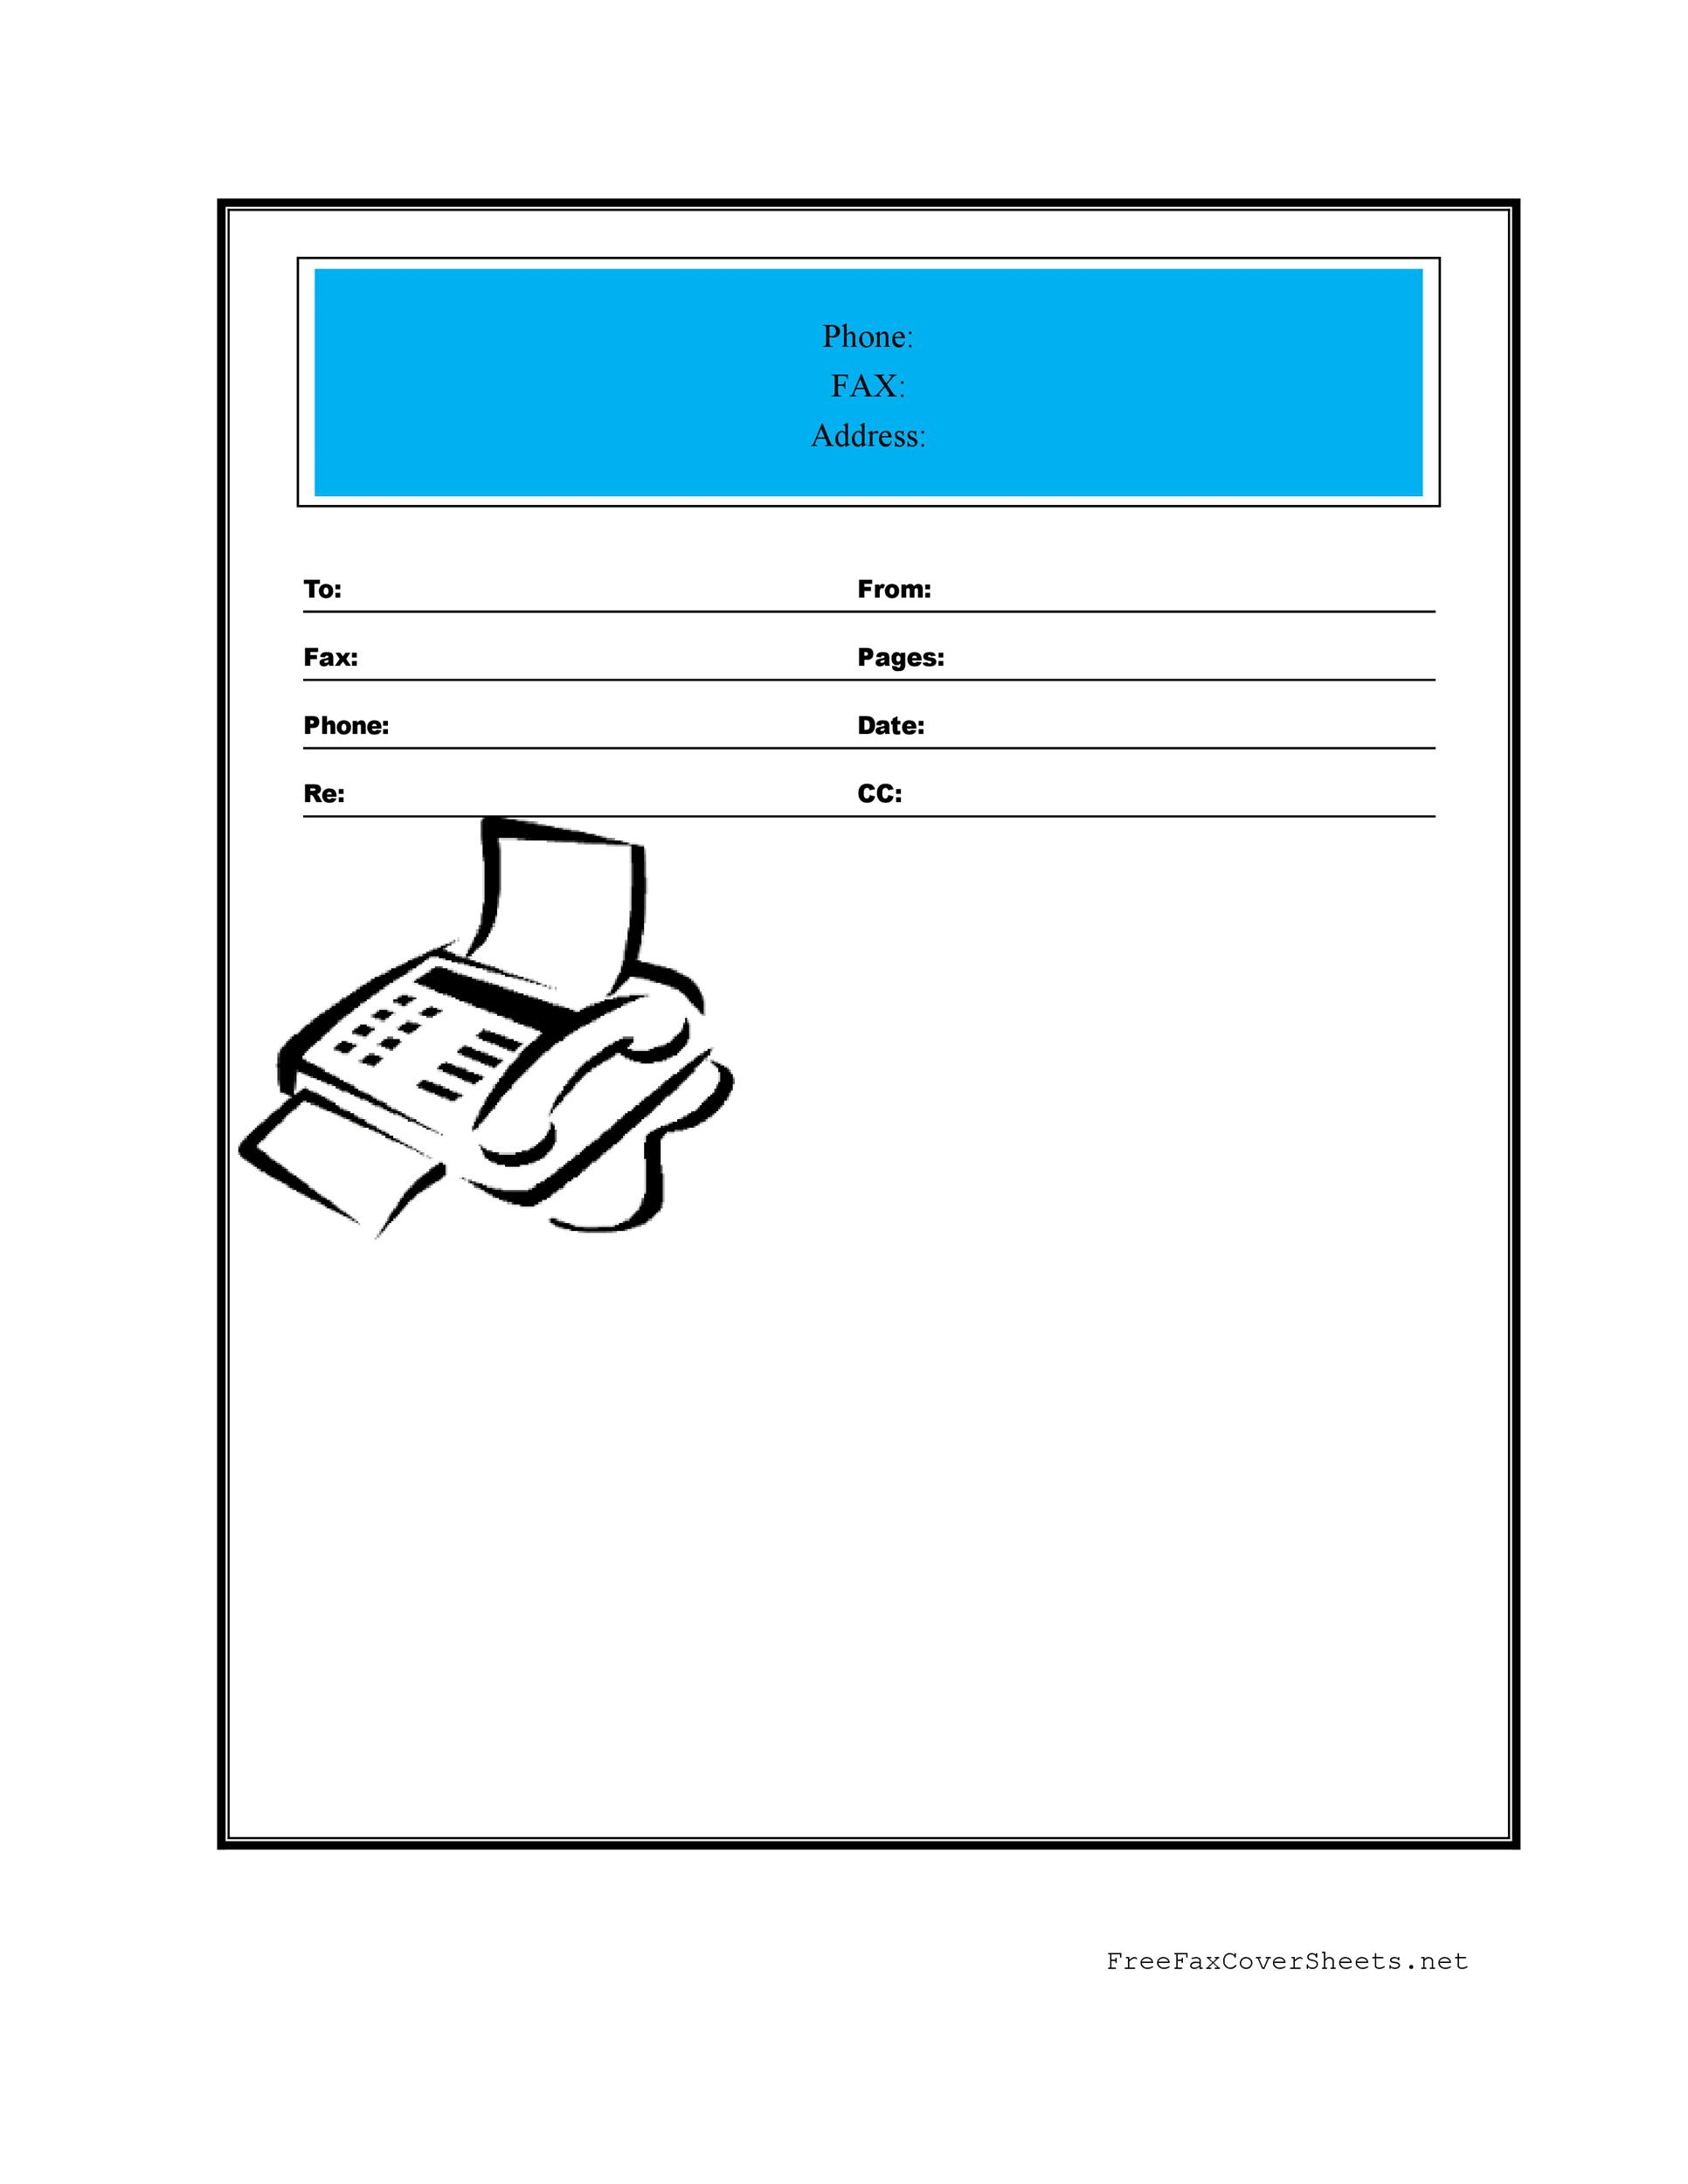 Fax Cover Sheet Template 26